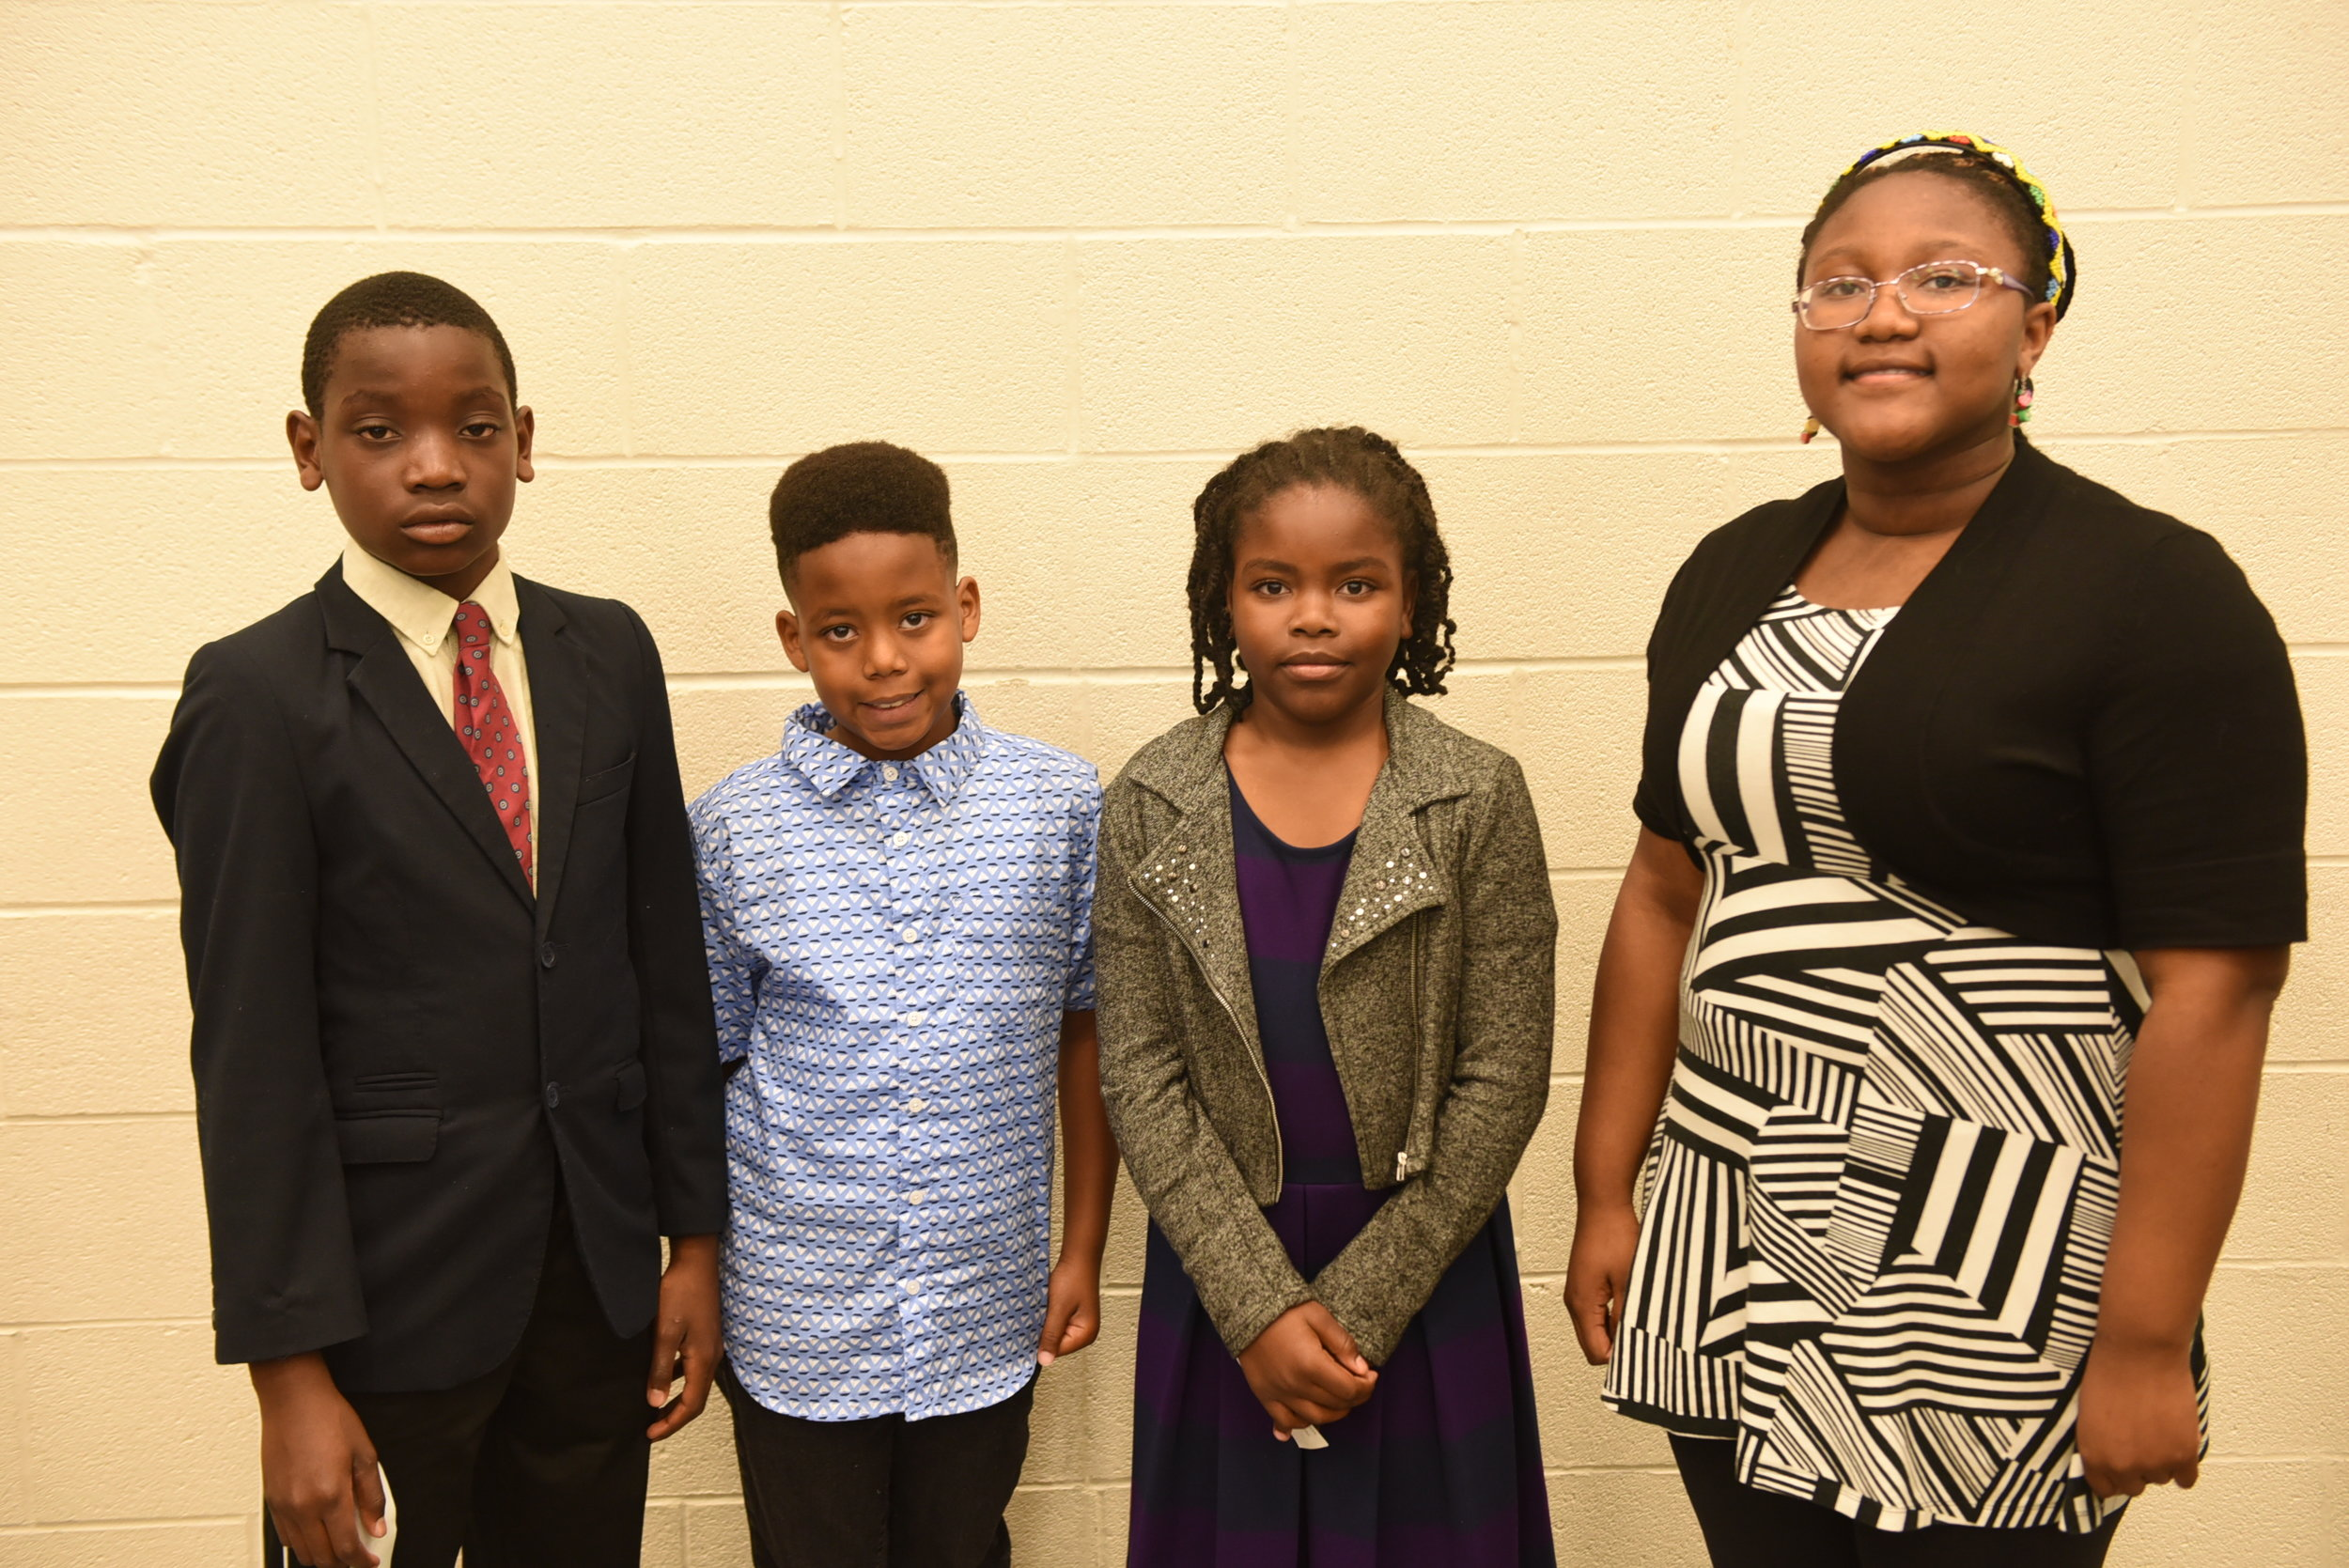 Elementary school awardees Idine Mbong (l), Gabrielle Williams, Josiah Walker & Olalou Oduwole